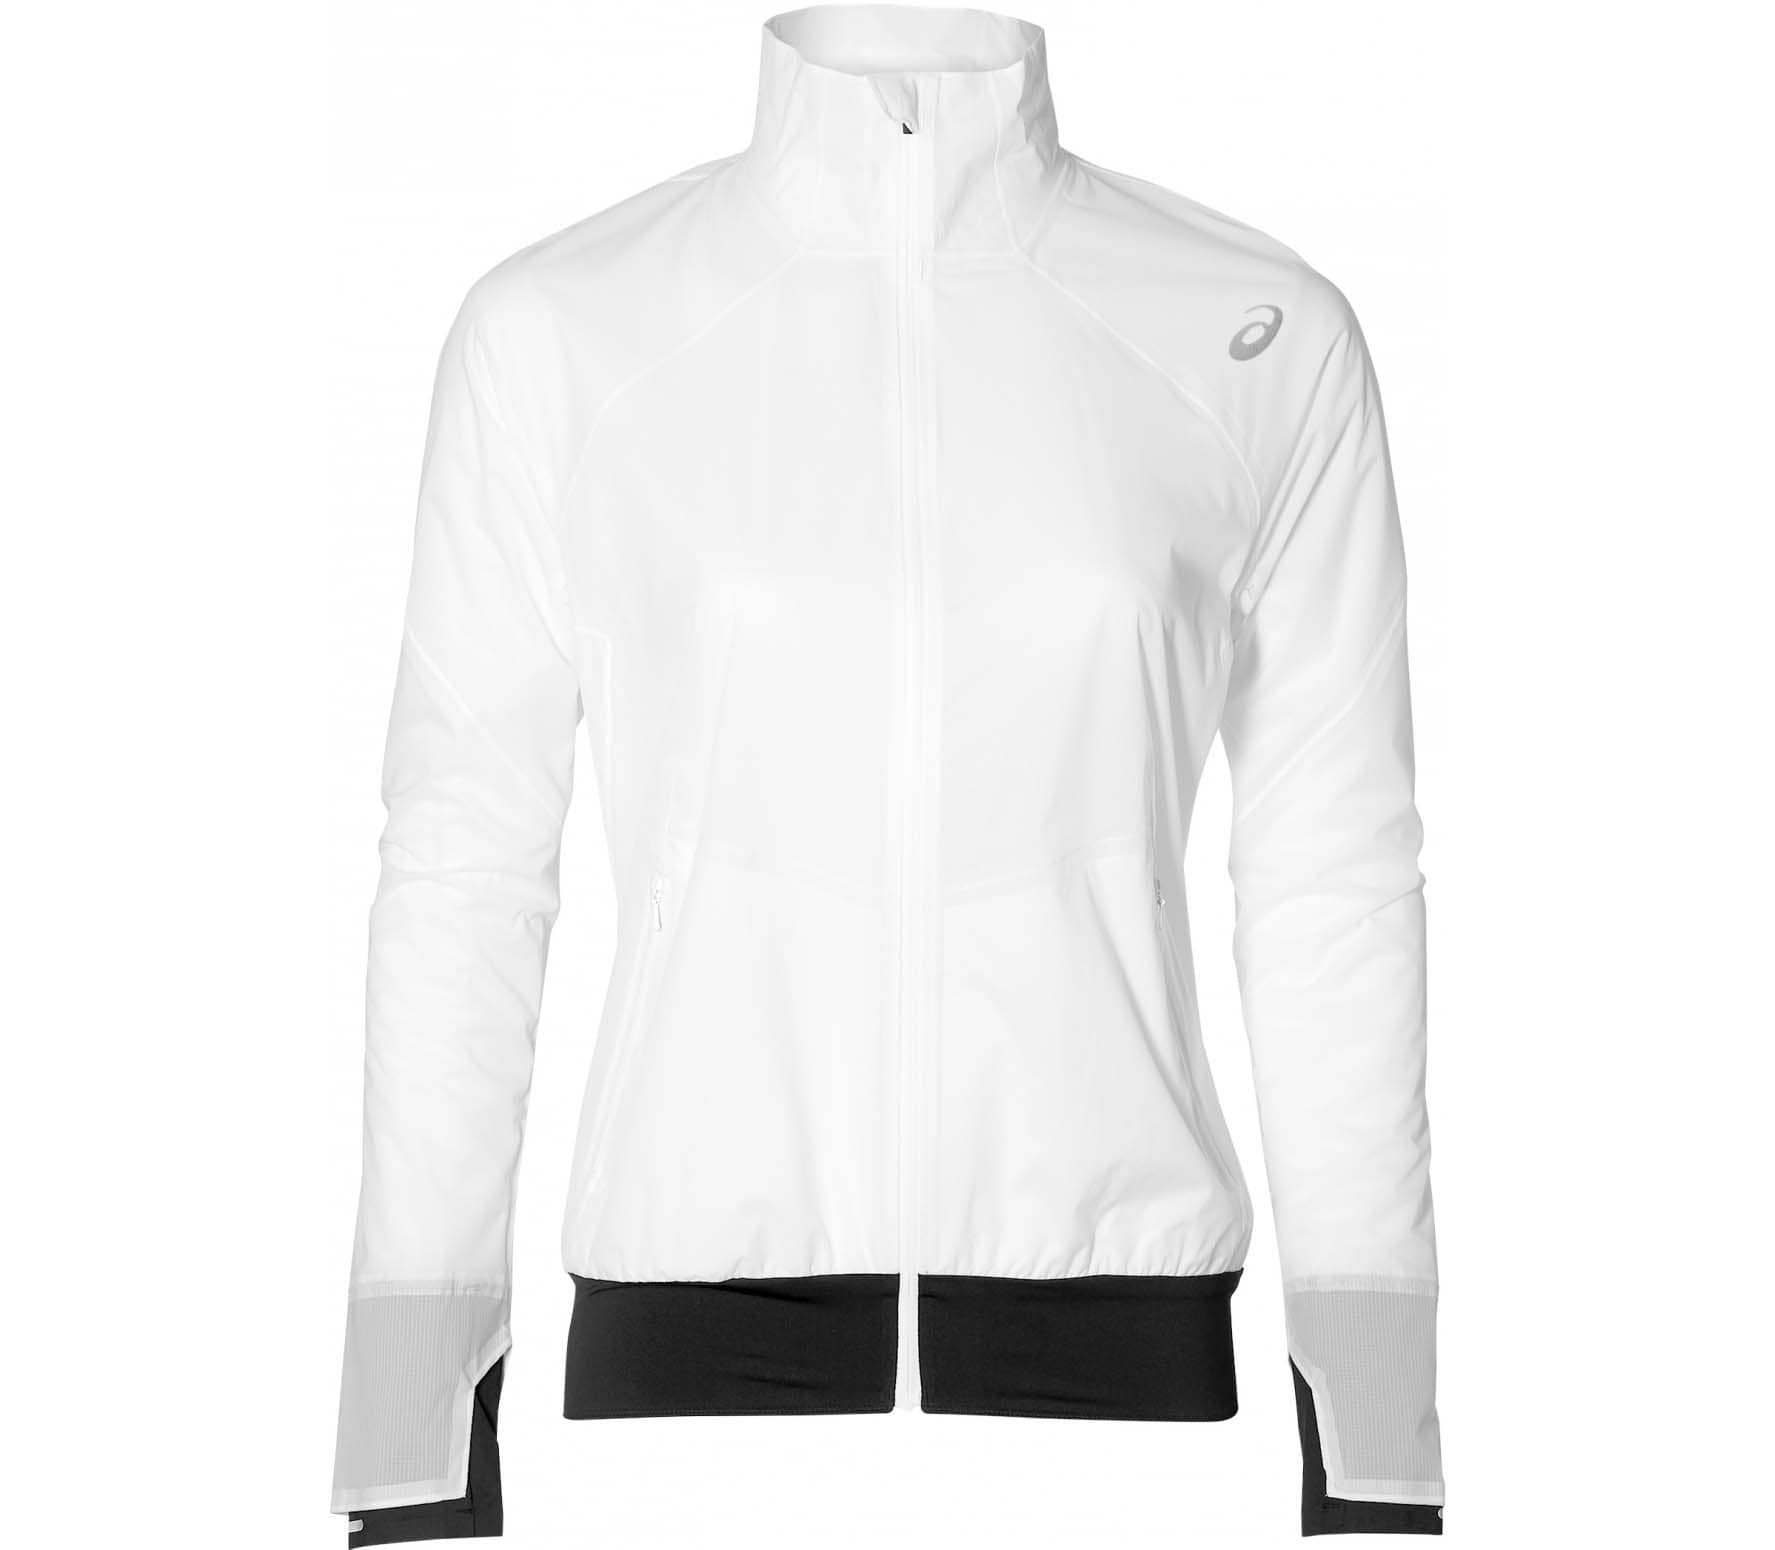 a779c18dc09 ASICS - Metarun women's running jacket (white) - buy it at the ...